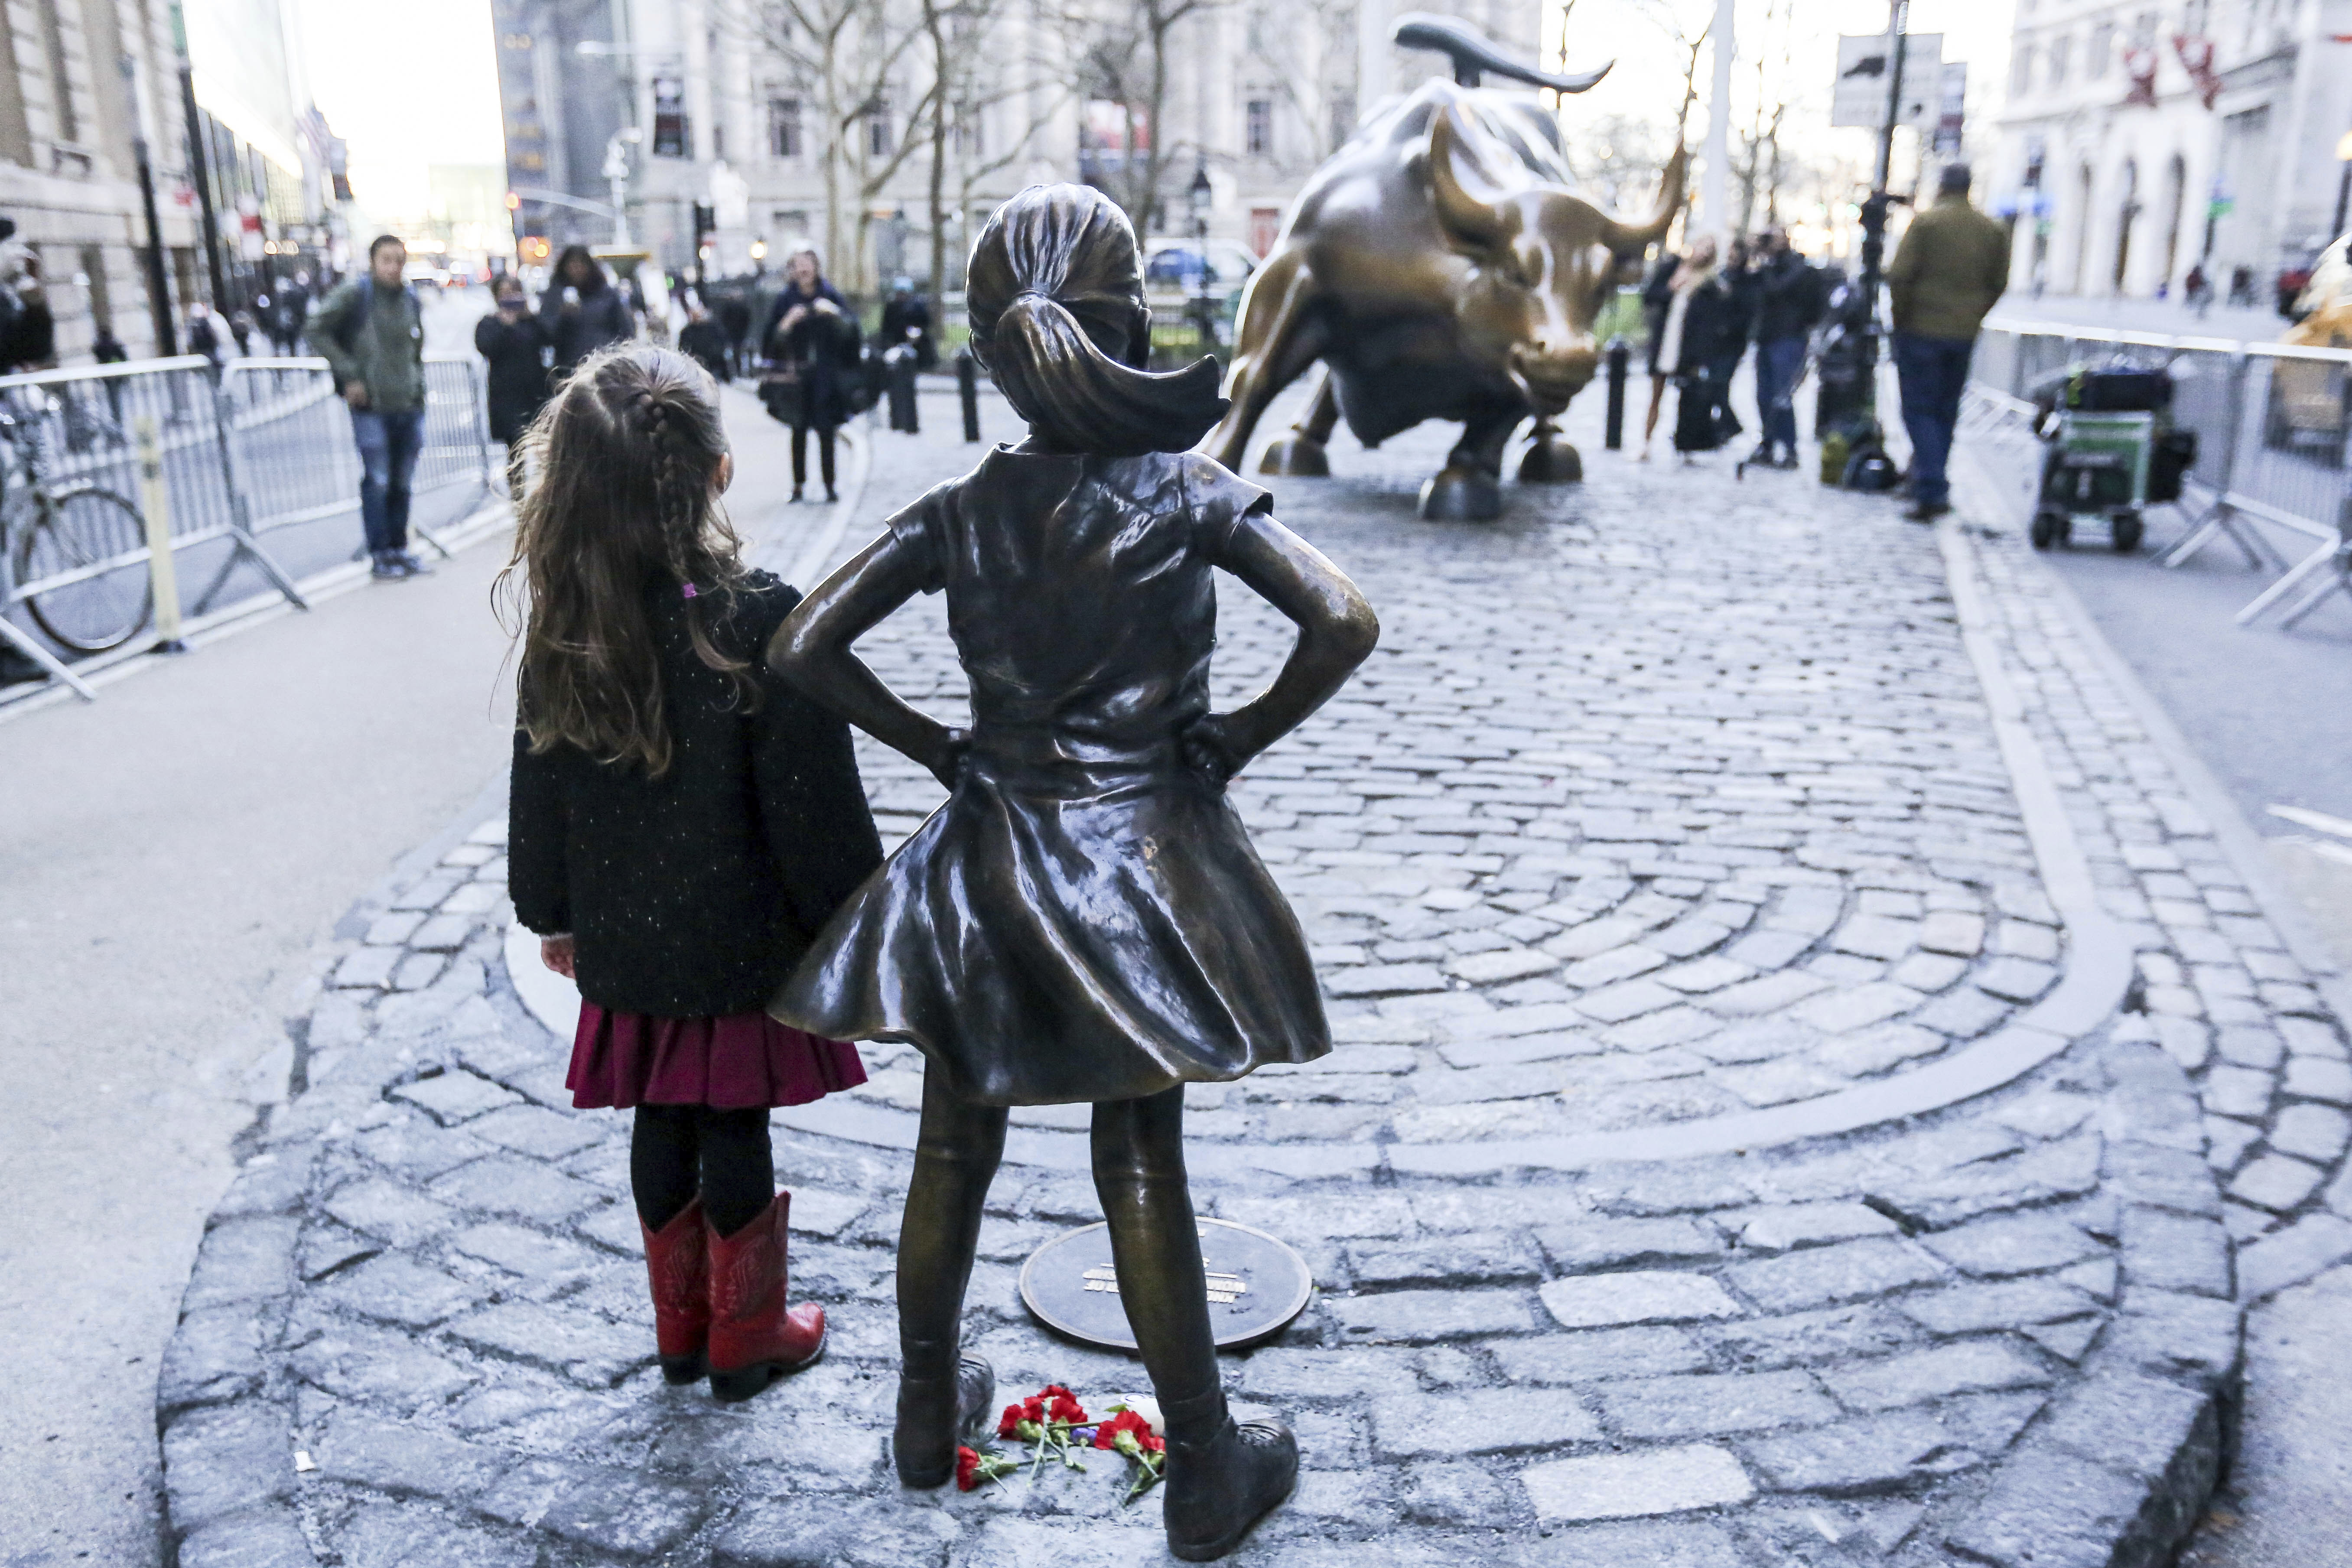 'The Fearless Girl' Statue in New York